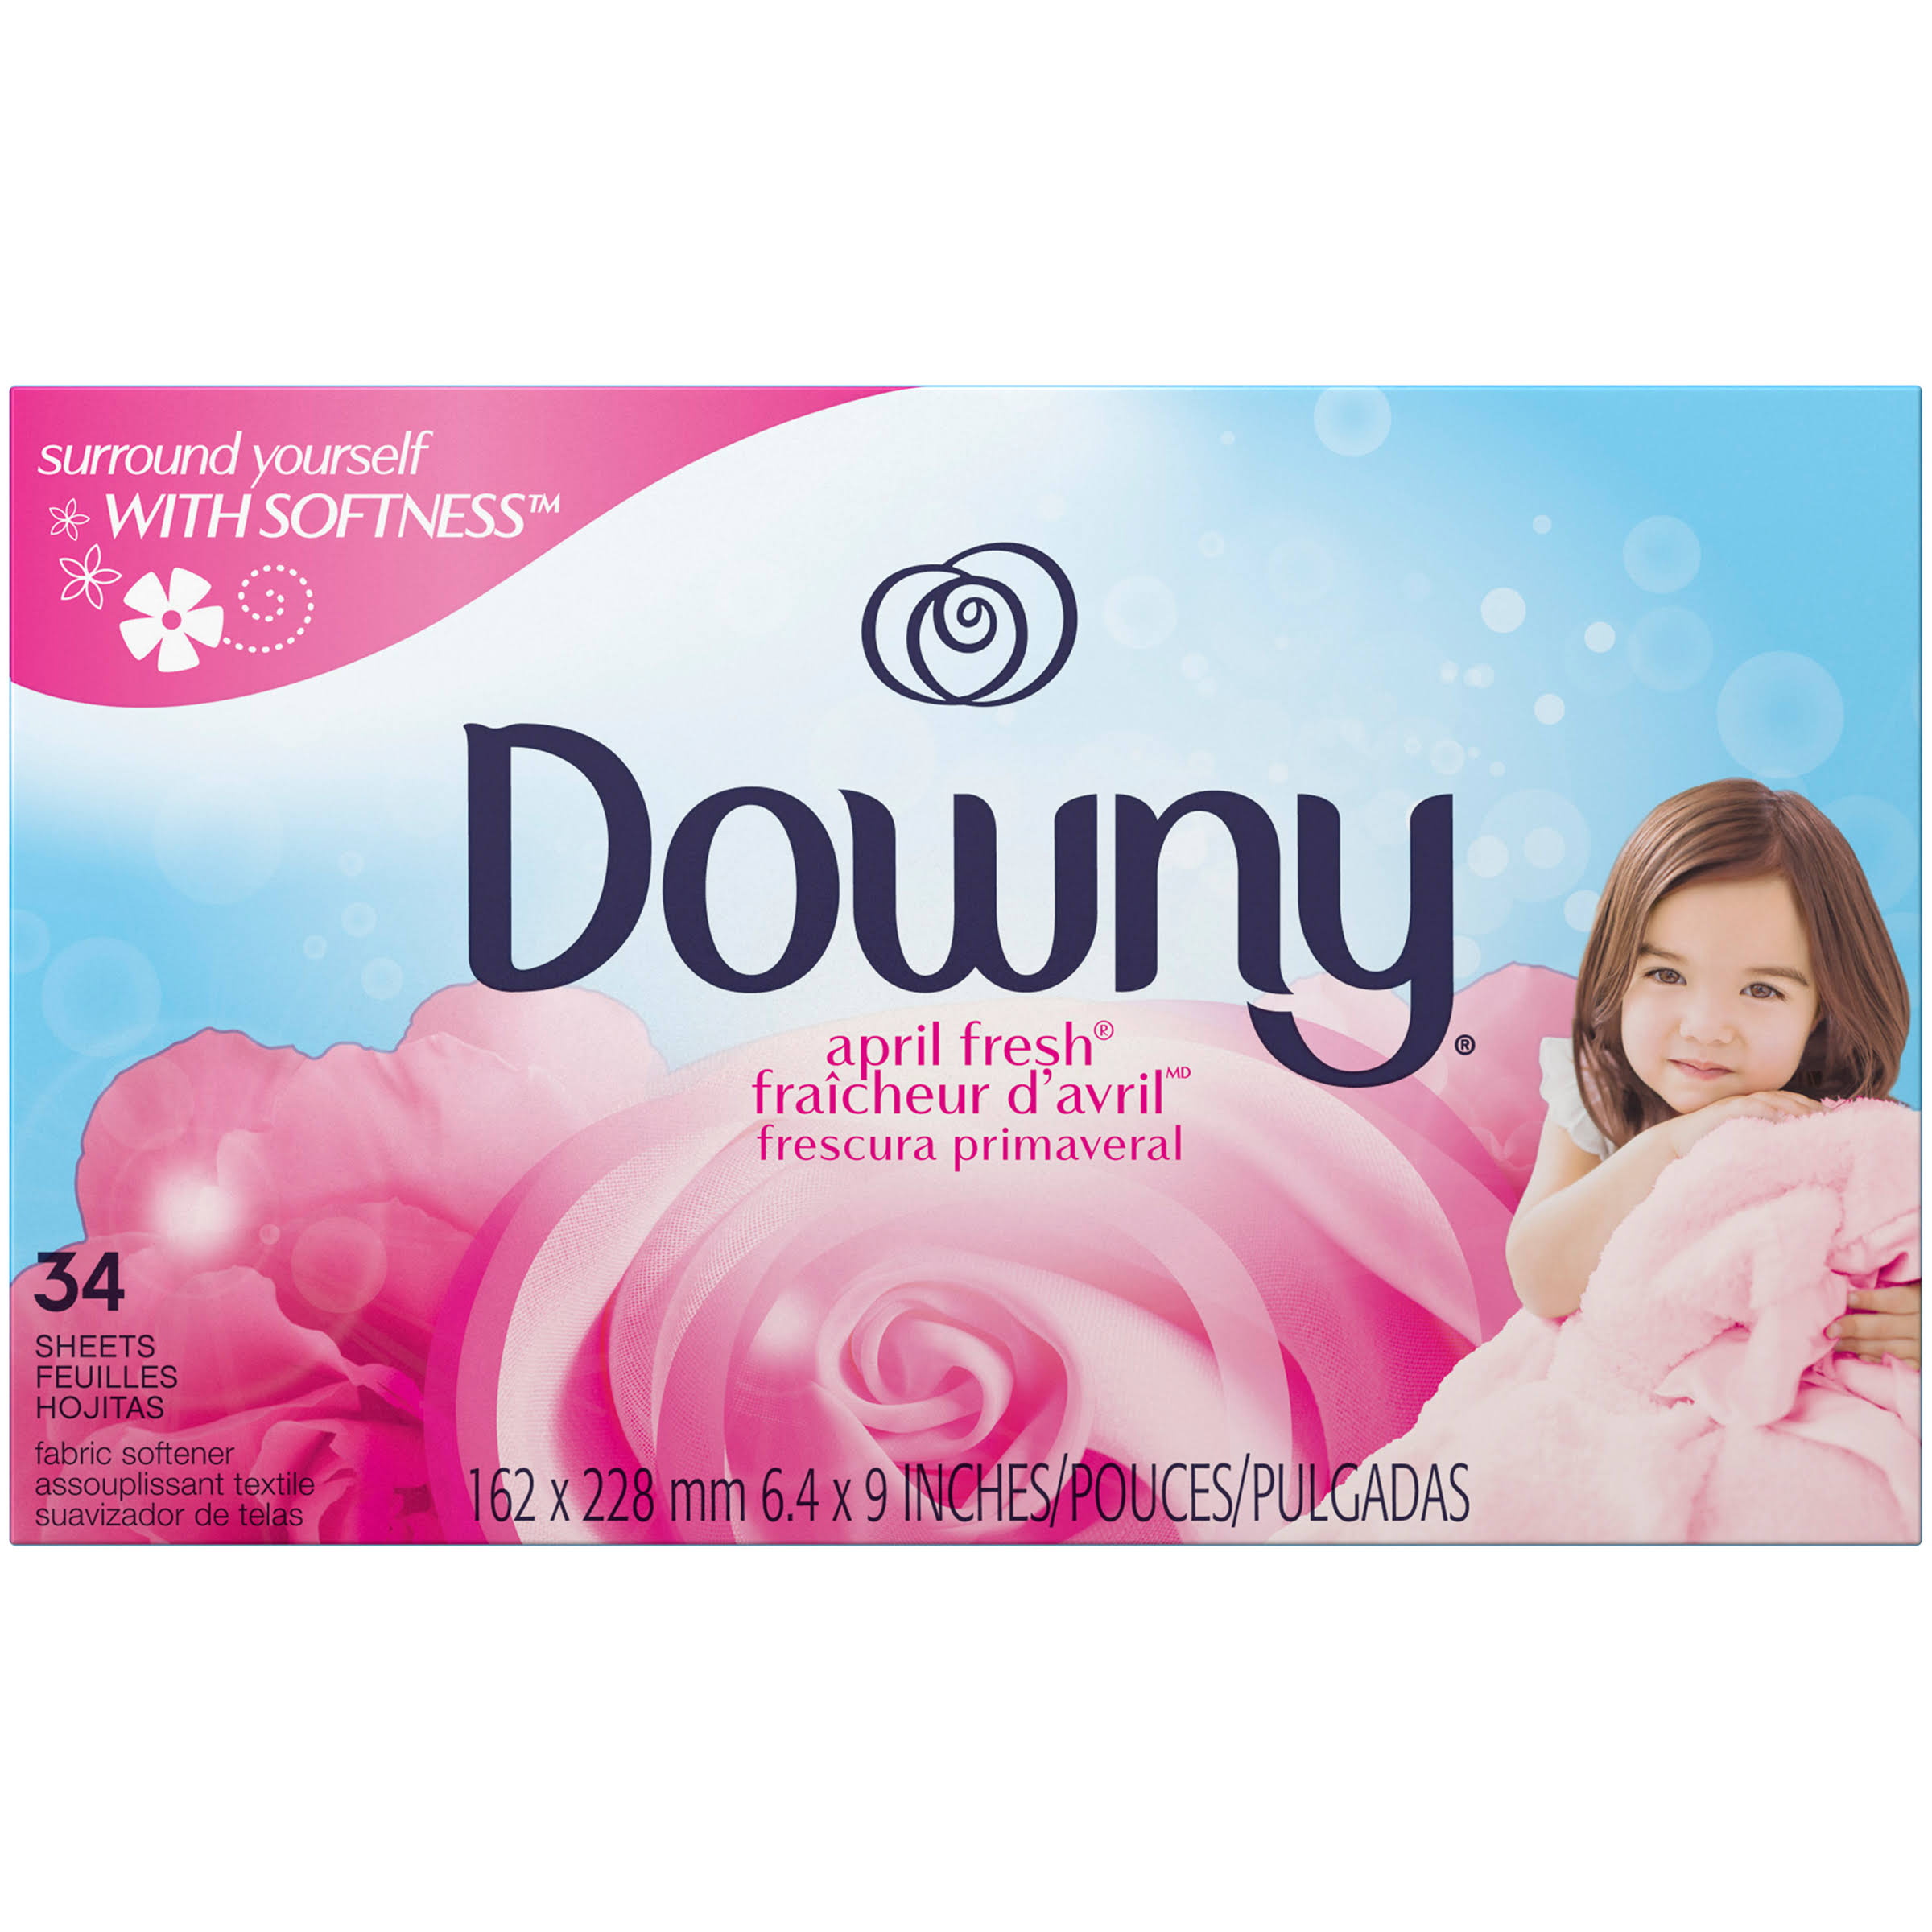 Downy Fabric Softener Dryer Sheets - April Fresh, 34ct